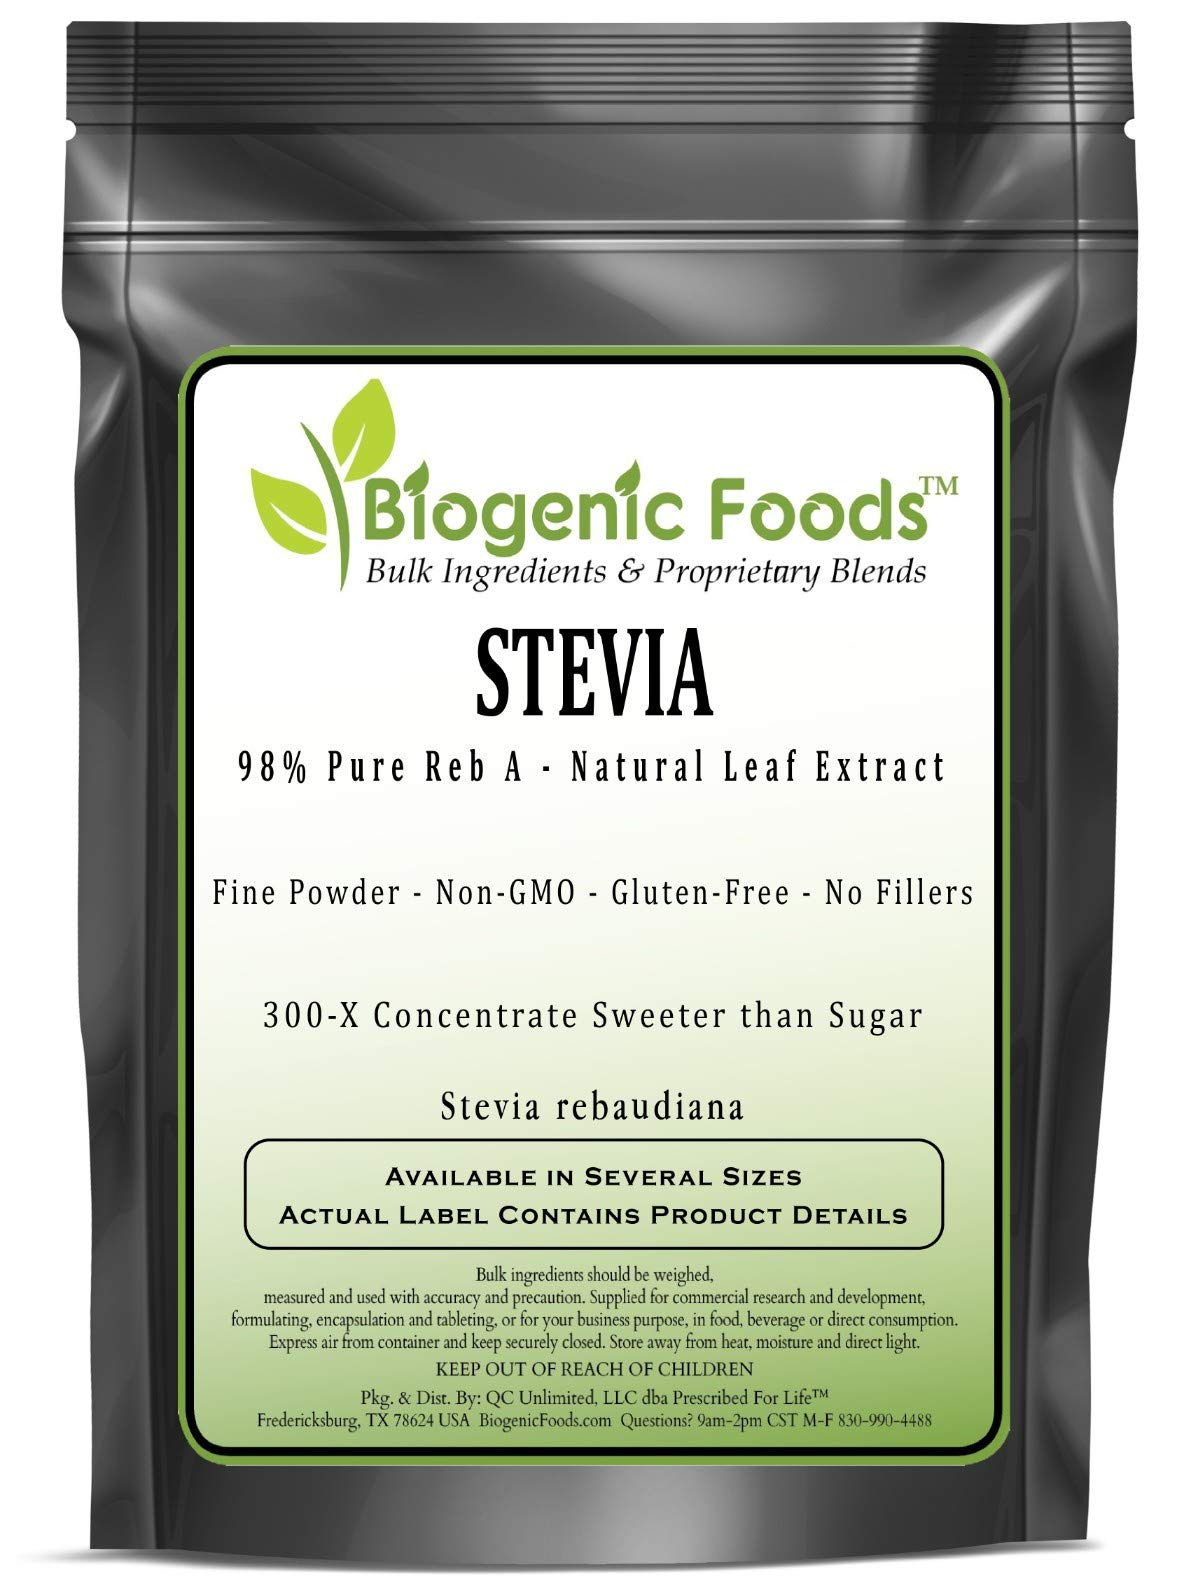 Stevia - 98% Pure Reb A - Natural Leaf Fine Powder Extract (Stevia rebaudiana), 10 kg